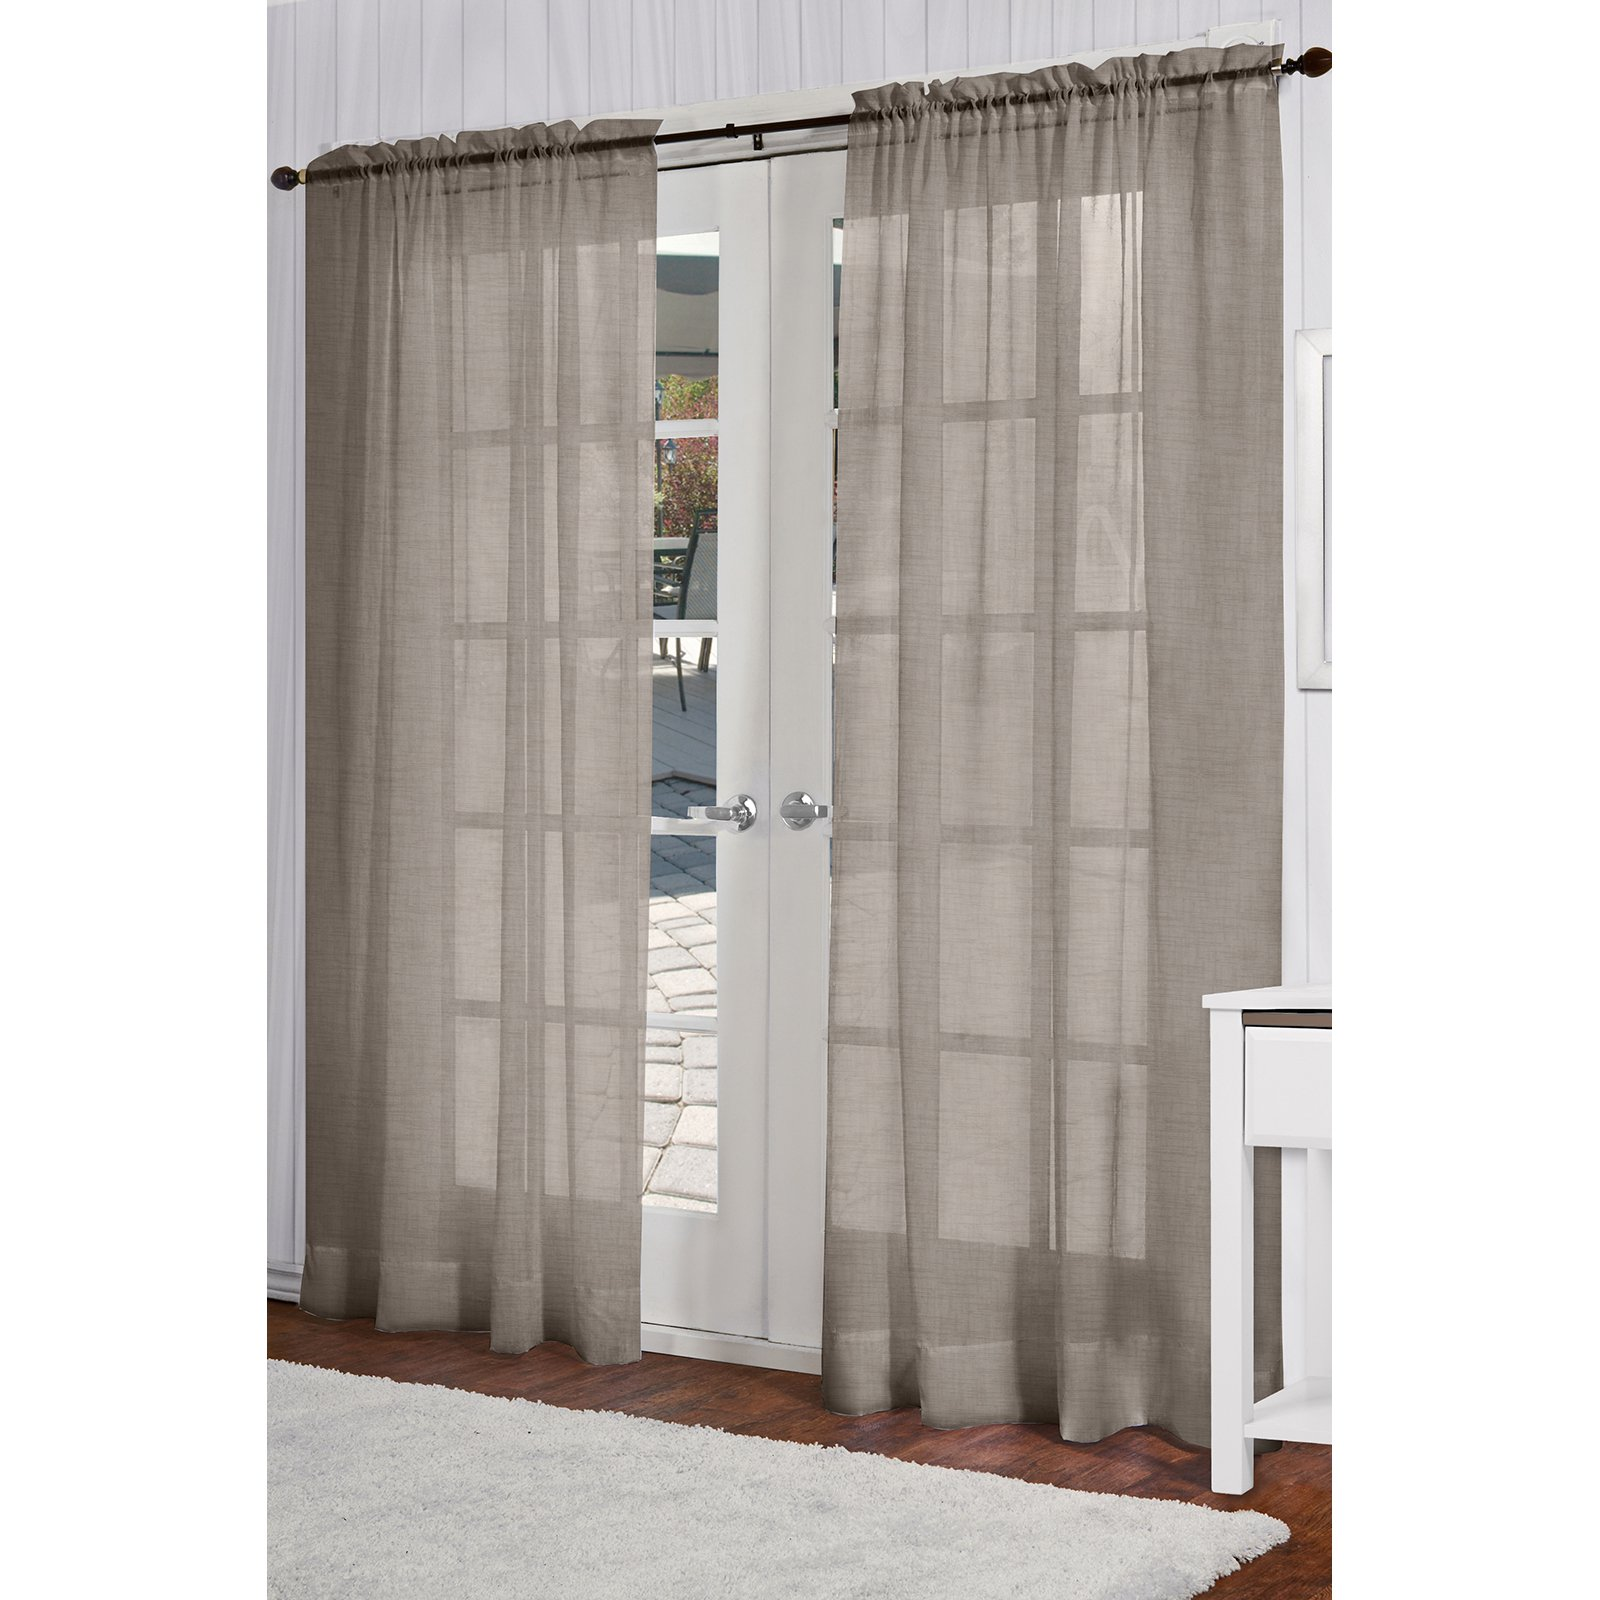 Exclusive Home Belgian Textured Linen Look Jacquard Sheer Window Curtain Panel Pair with Rod Pocket